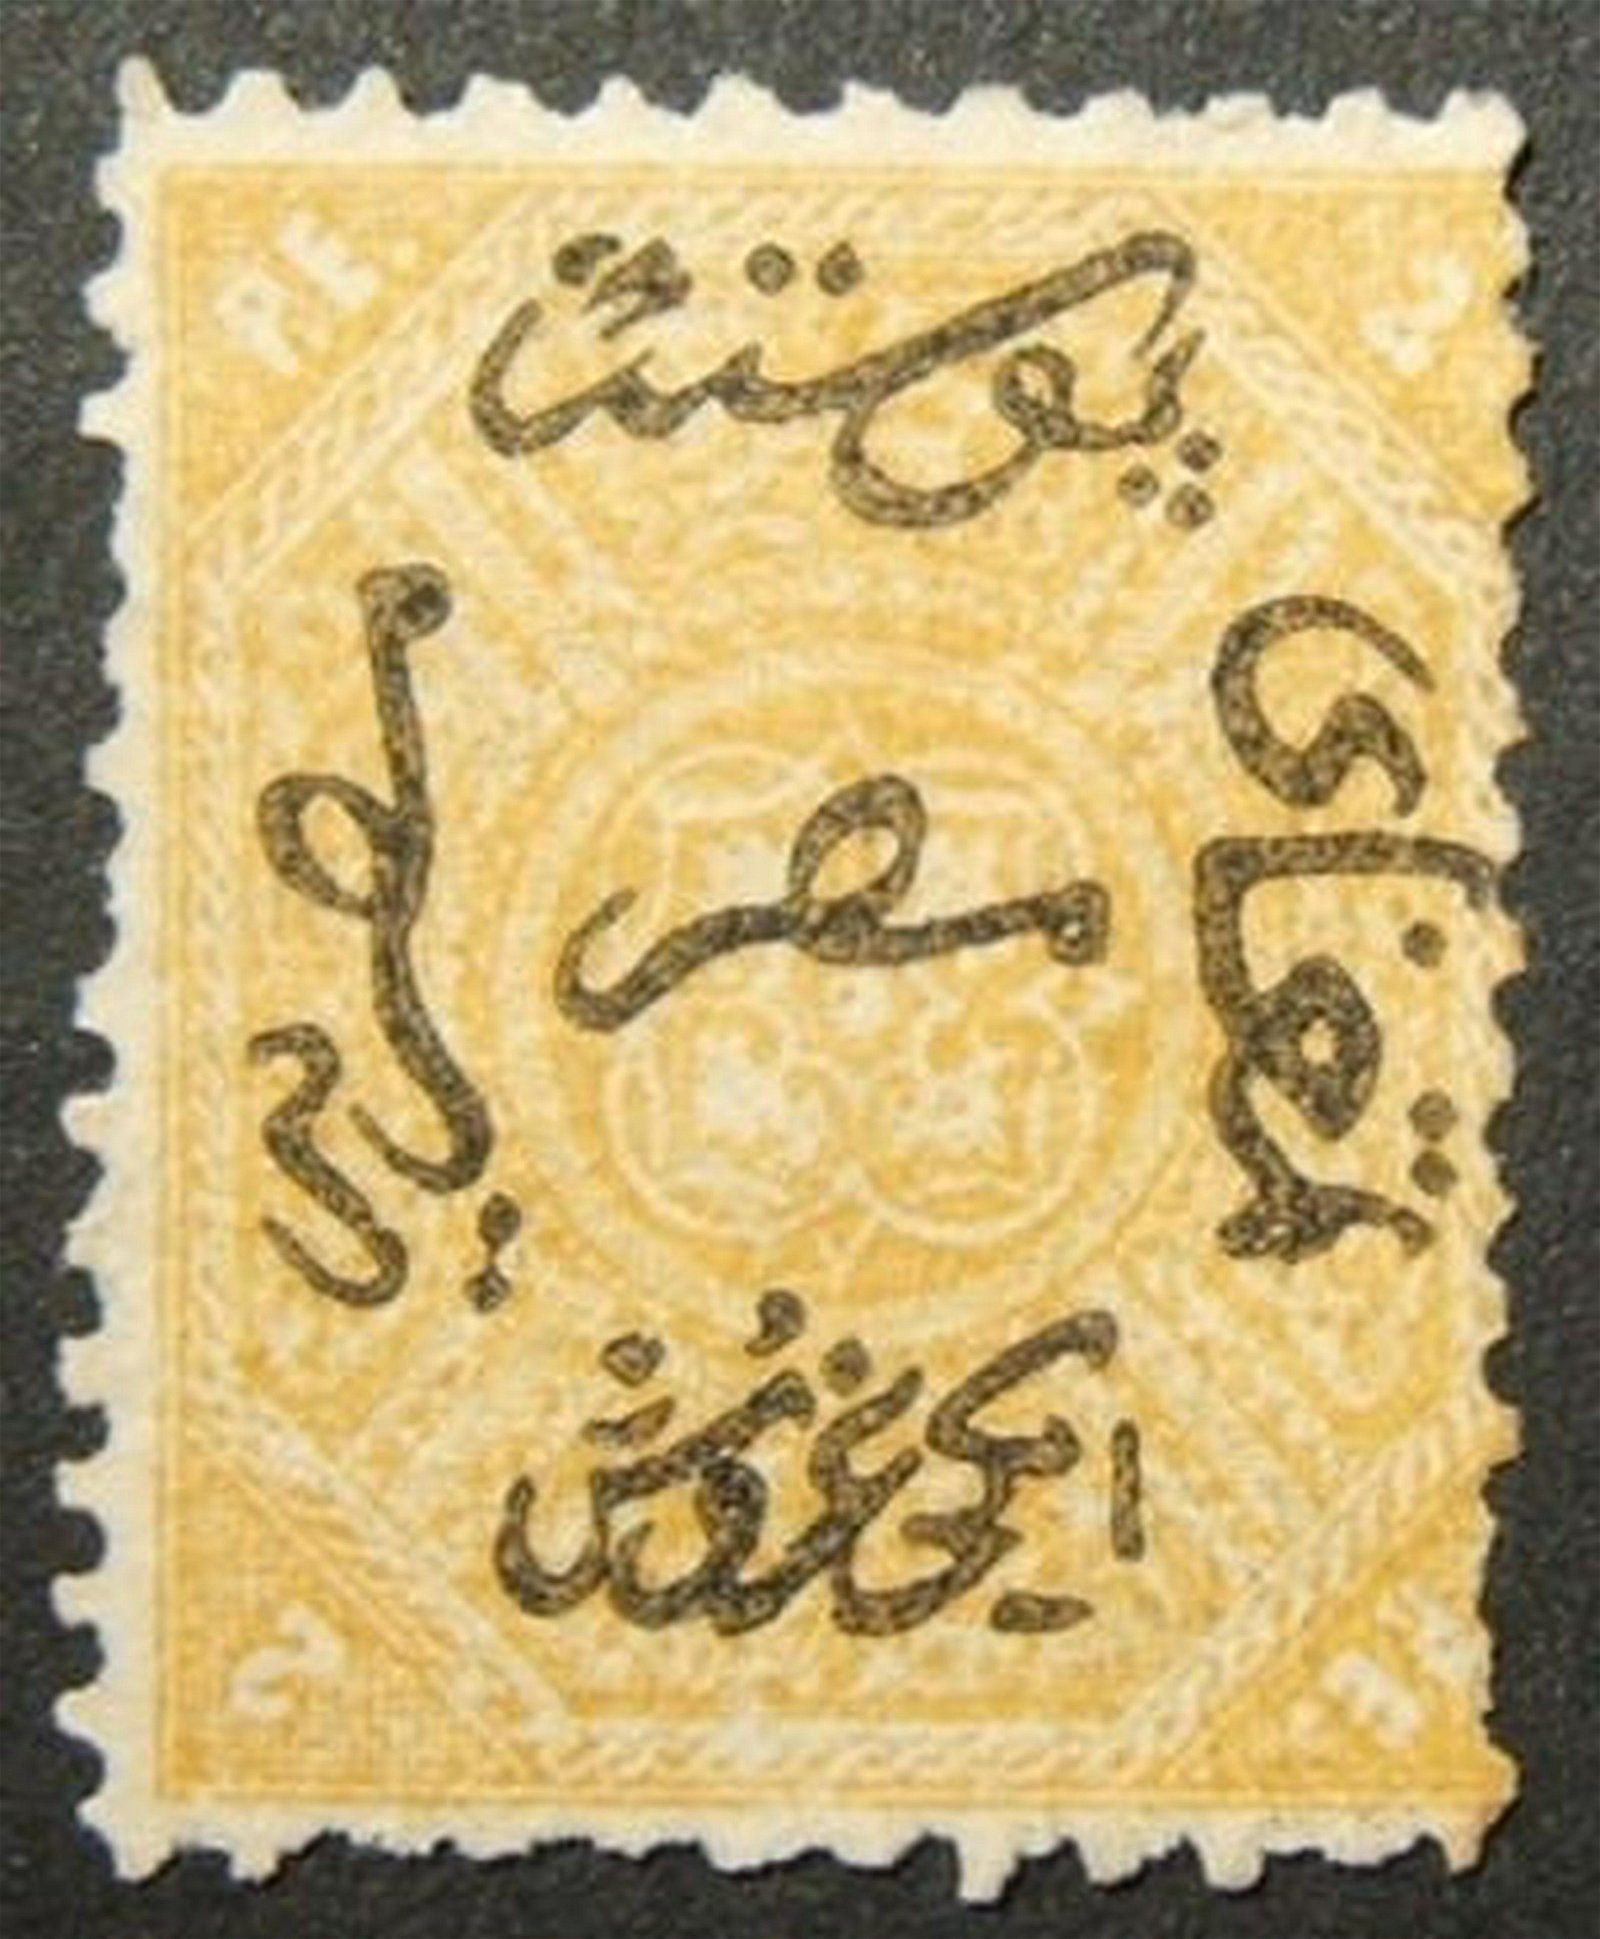 Egyptian mint 1866 2pia orange-yellow stamp, inverted